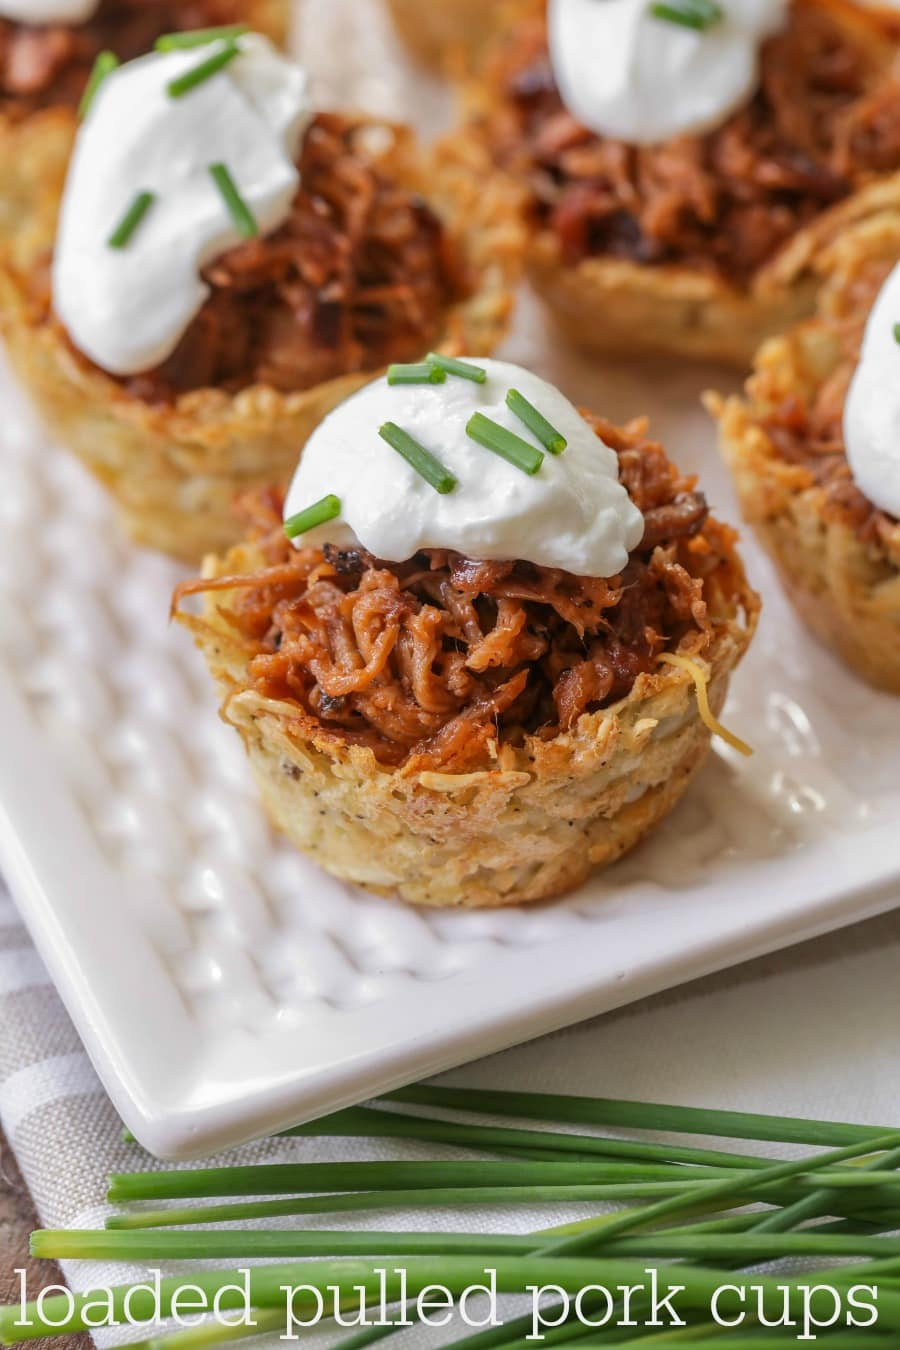 Loaded Pulled Pork Cups - Hashbrown cups filled with the yummiest pulled pork and topped with sour cream and chives! Delicious!!